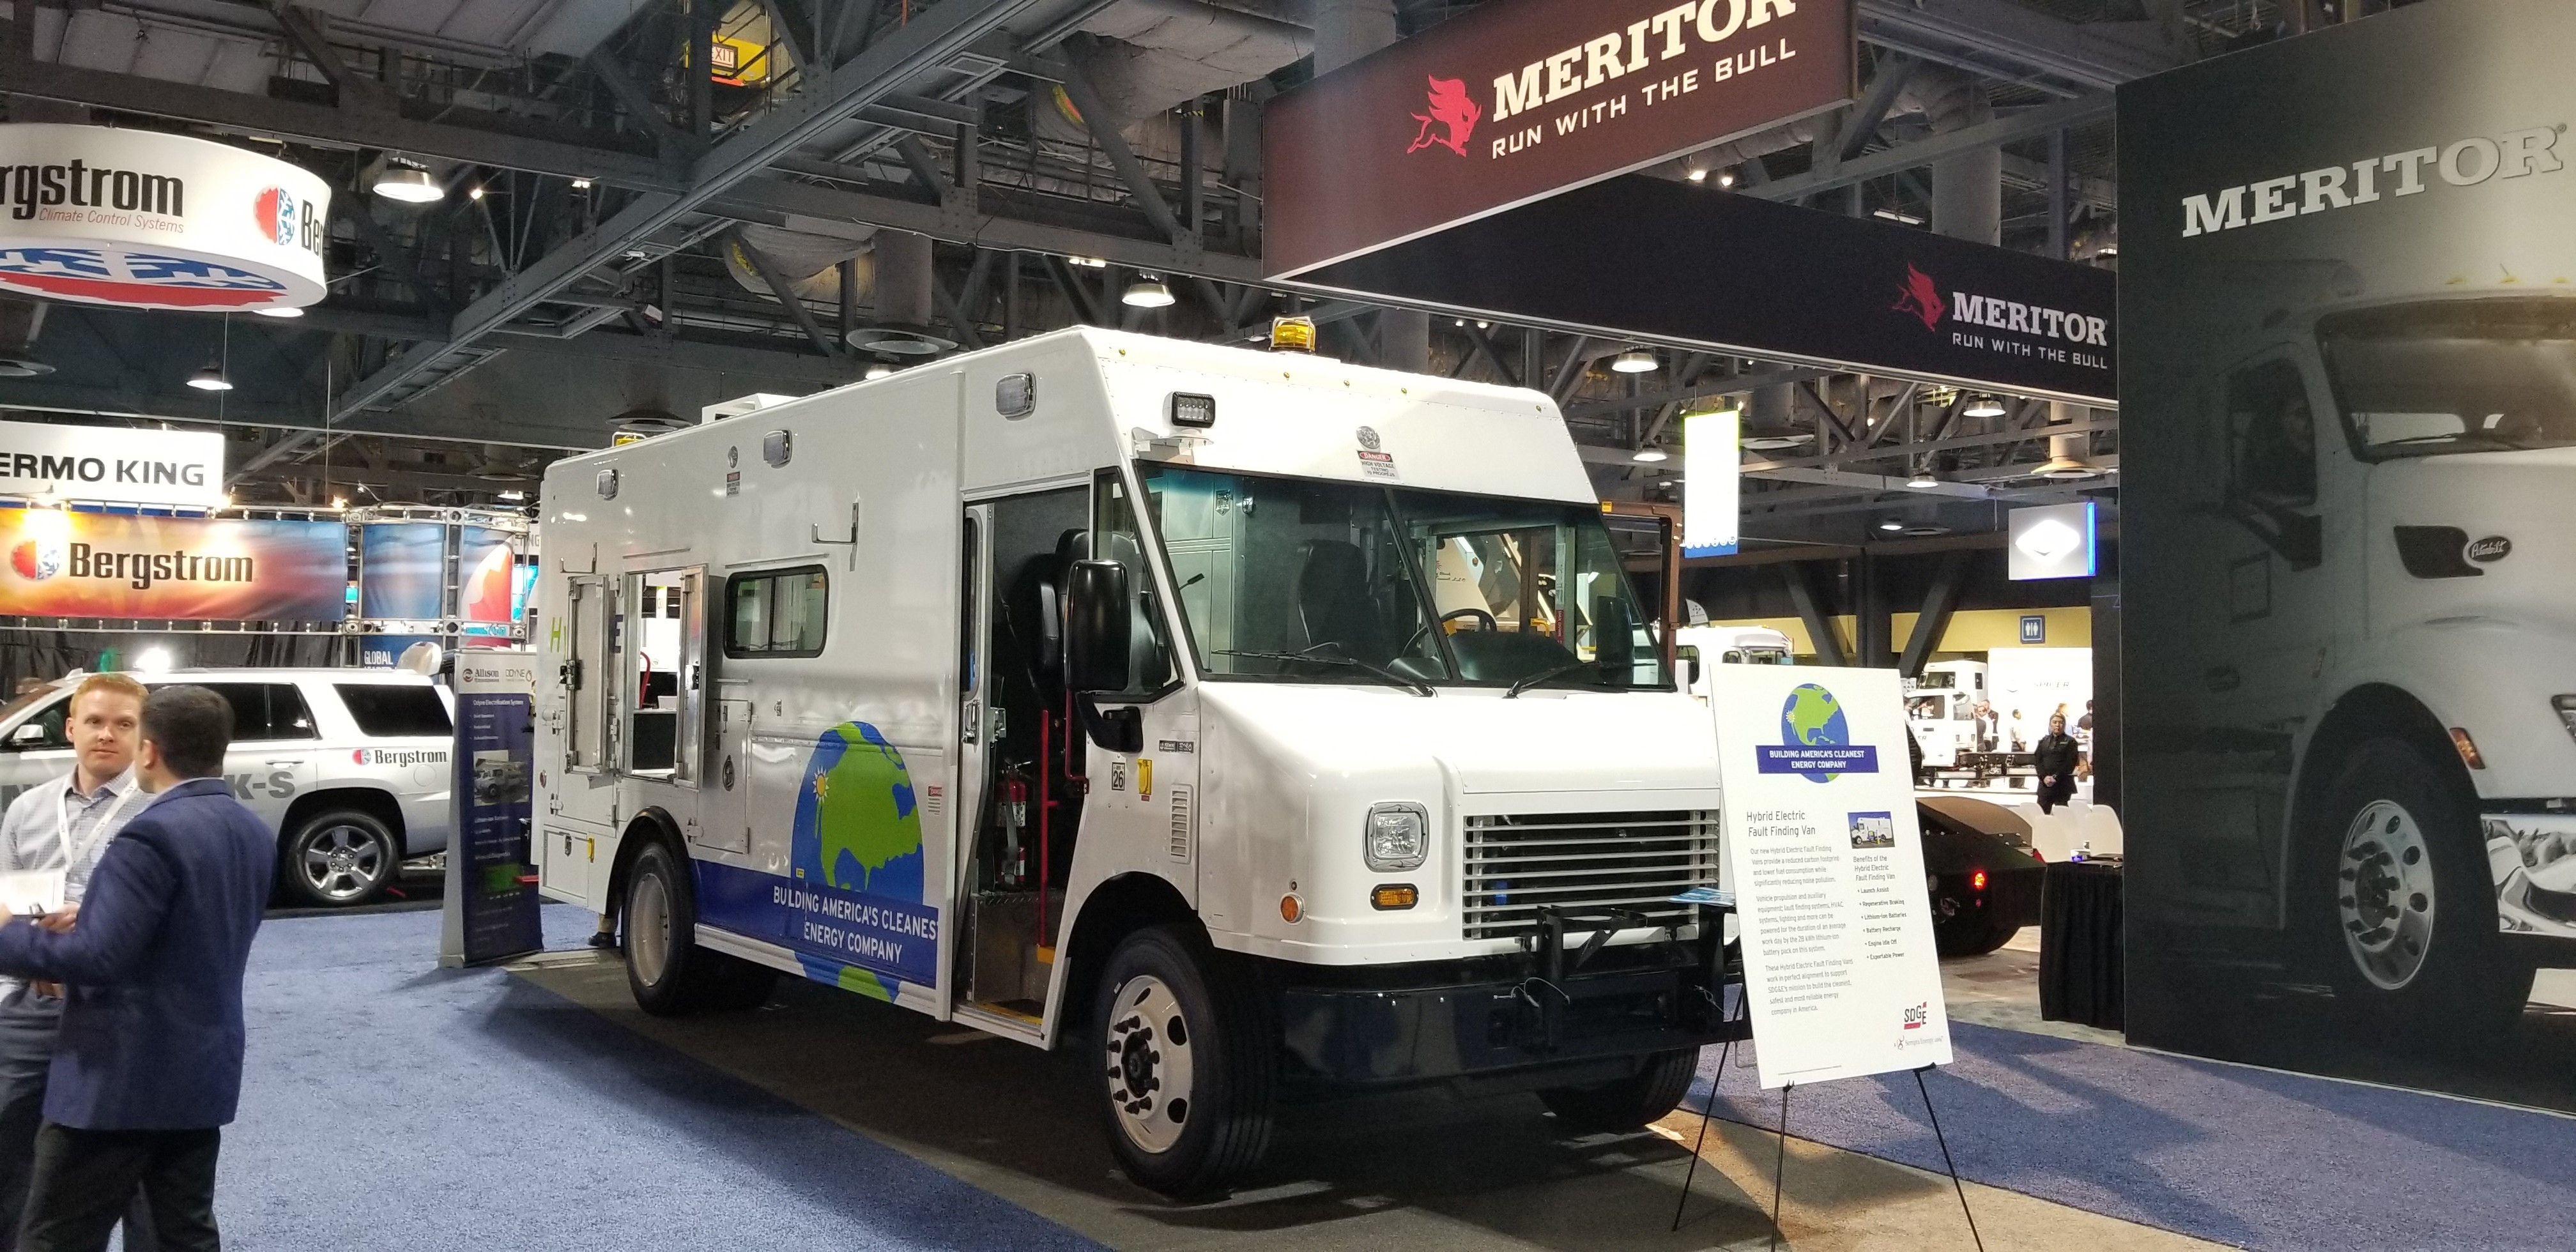 SDG&E's Electric Hybrid Fault-Finding Van on Display at the ACT EXpo